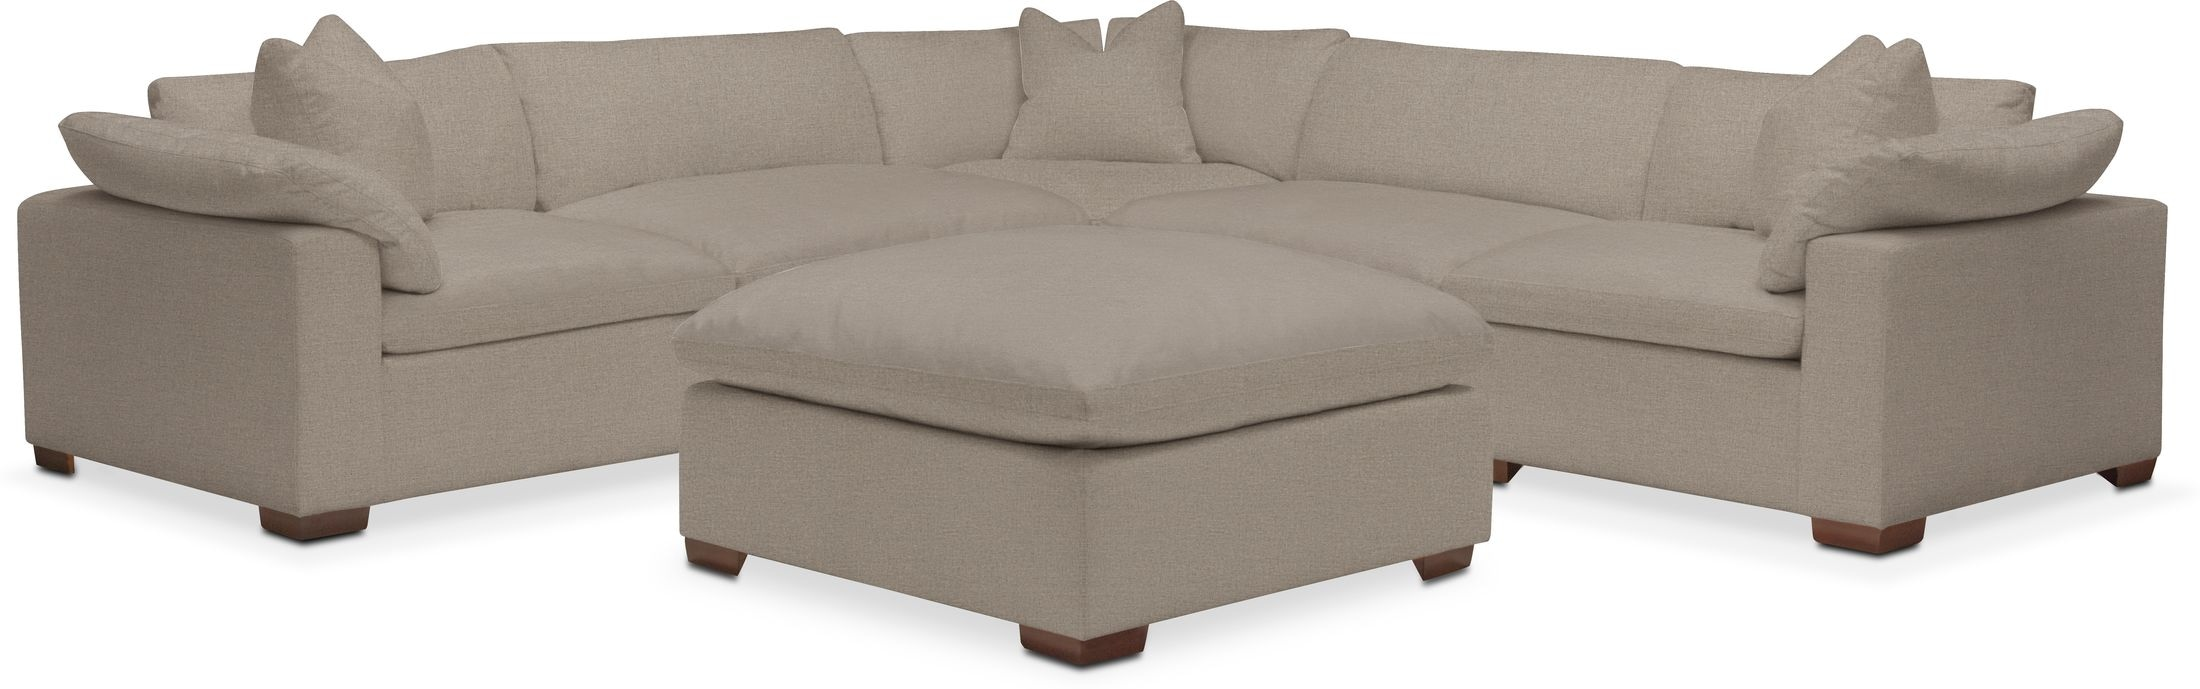 Living Room Furniture - Plush Performance 5-Piece Sectional with Ottoman